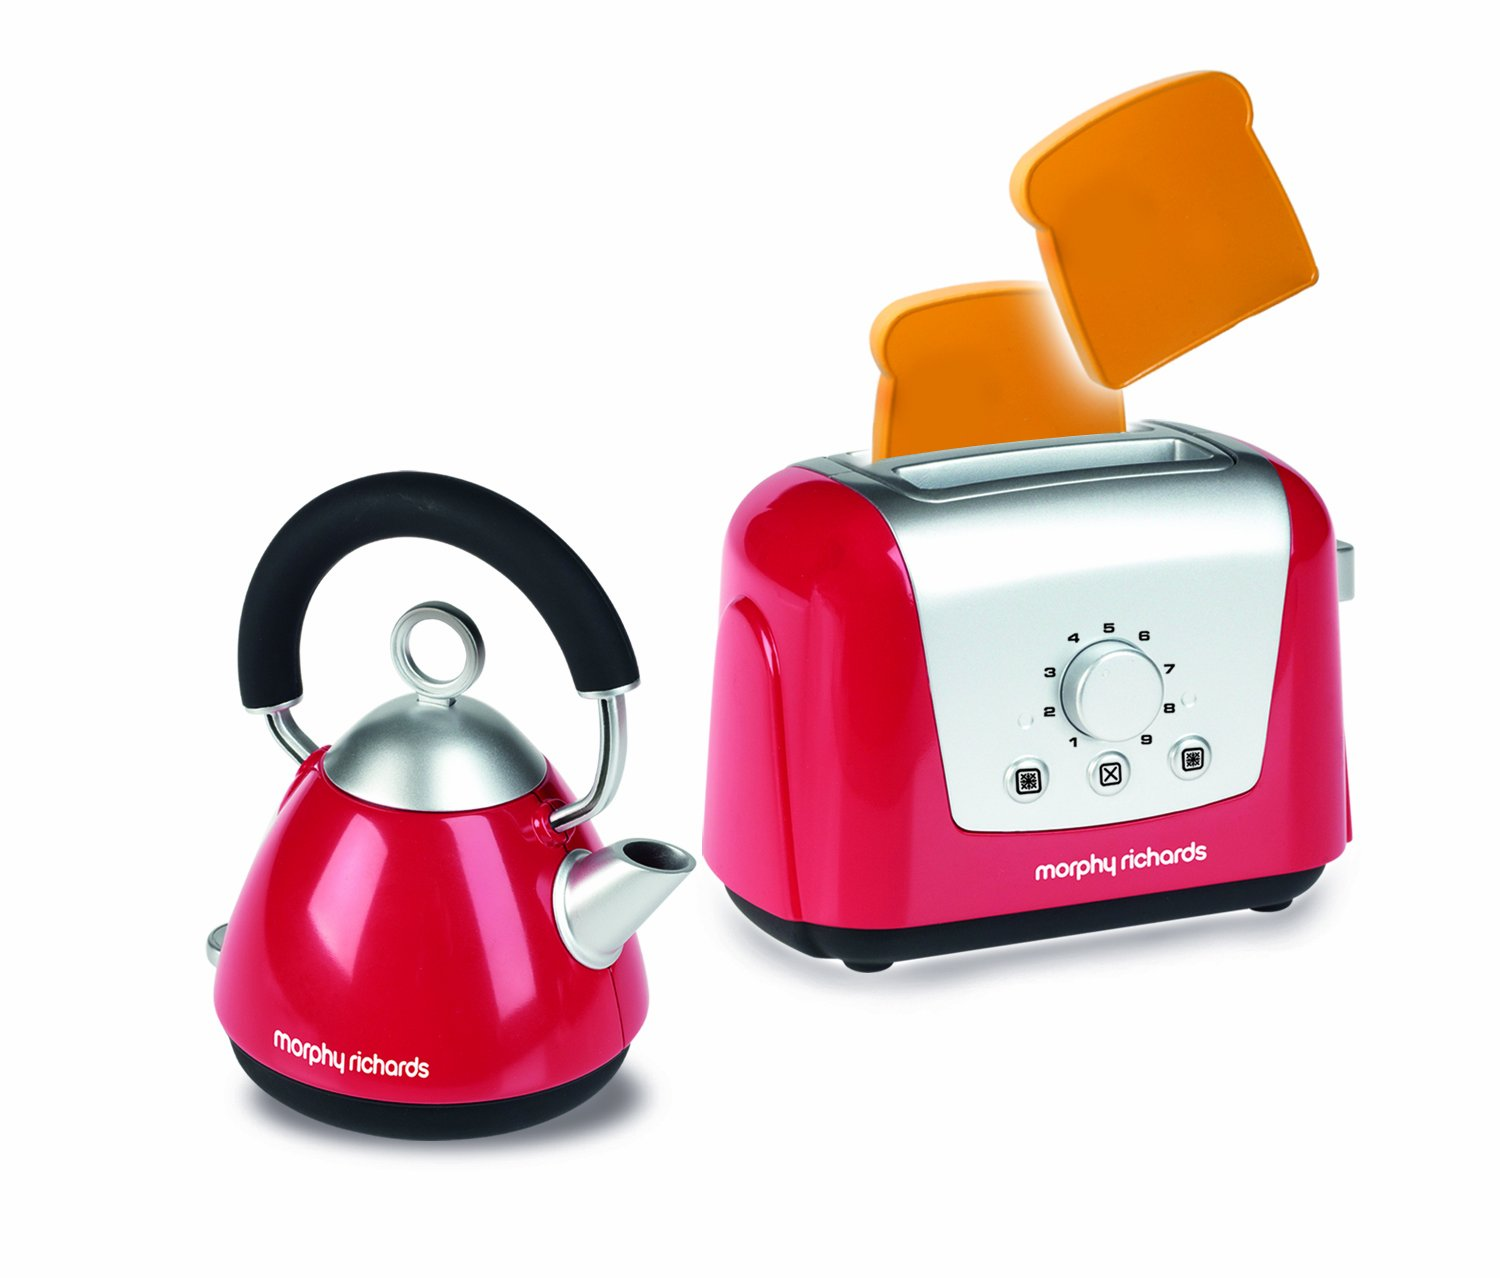 Casdon Little Cook Morphy Richards Toaster and Kettle Set by Casdon Little Cook